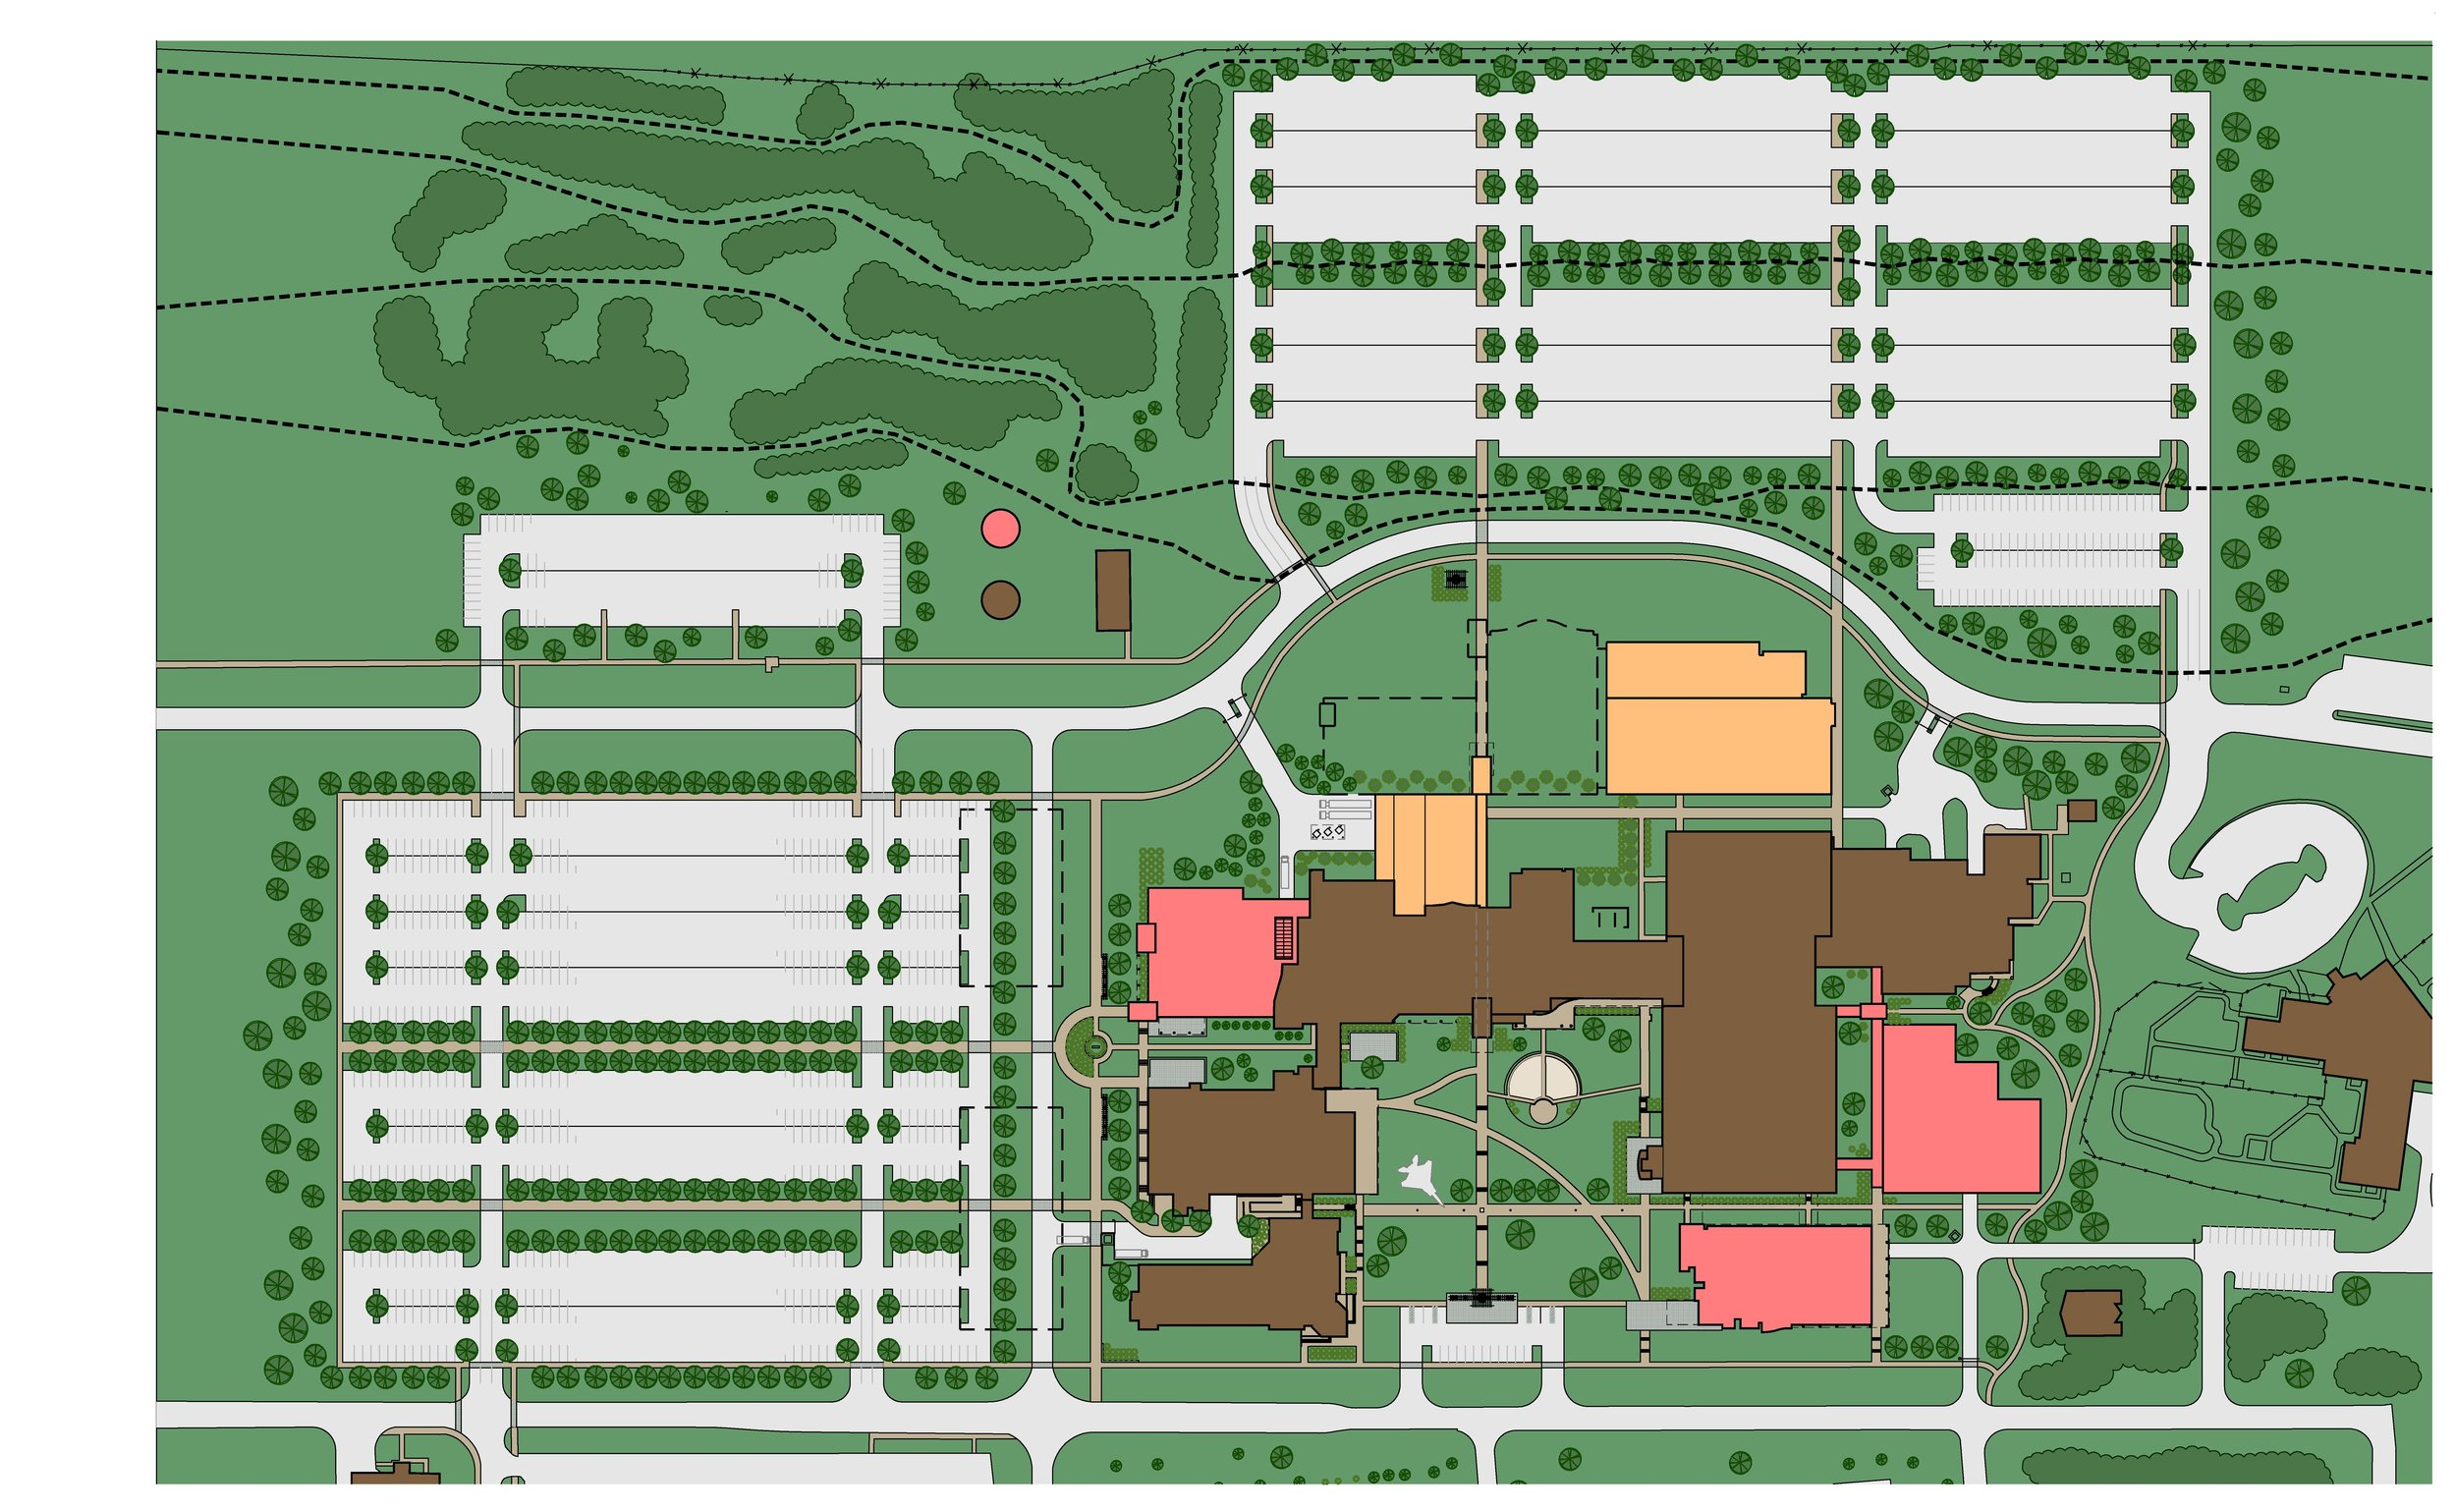 AFIT Master Site Plan No Label.jpg